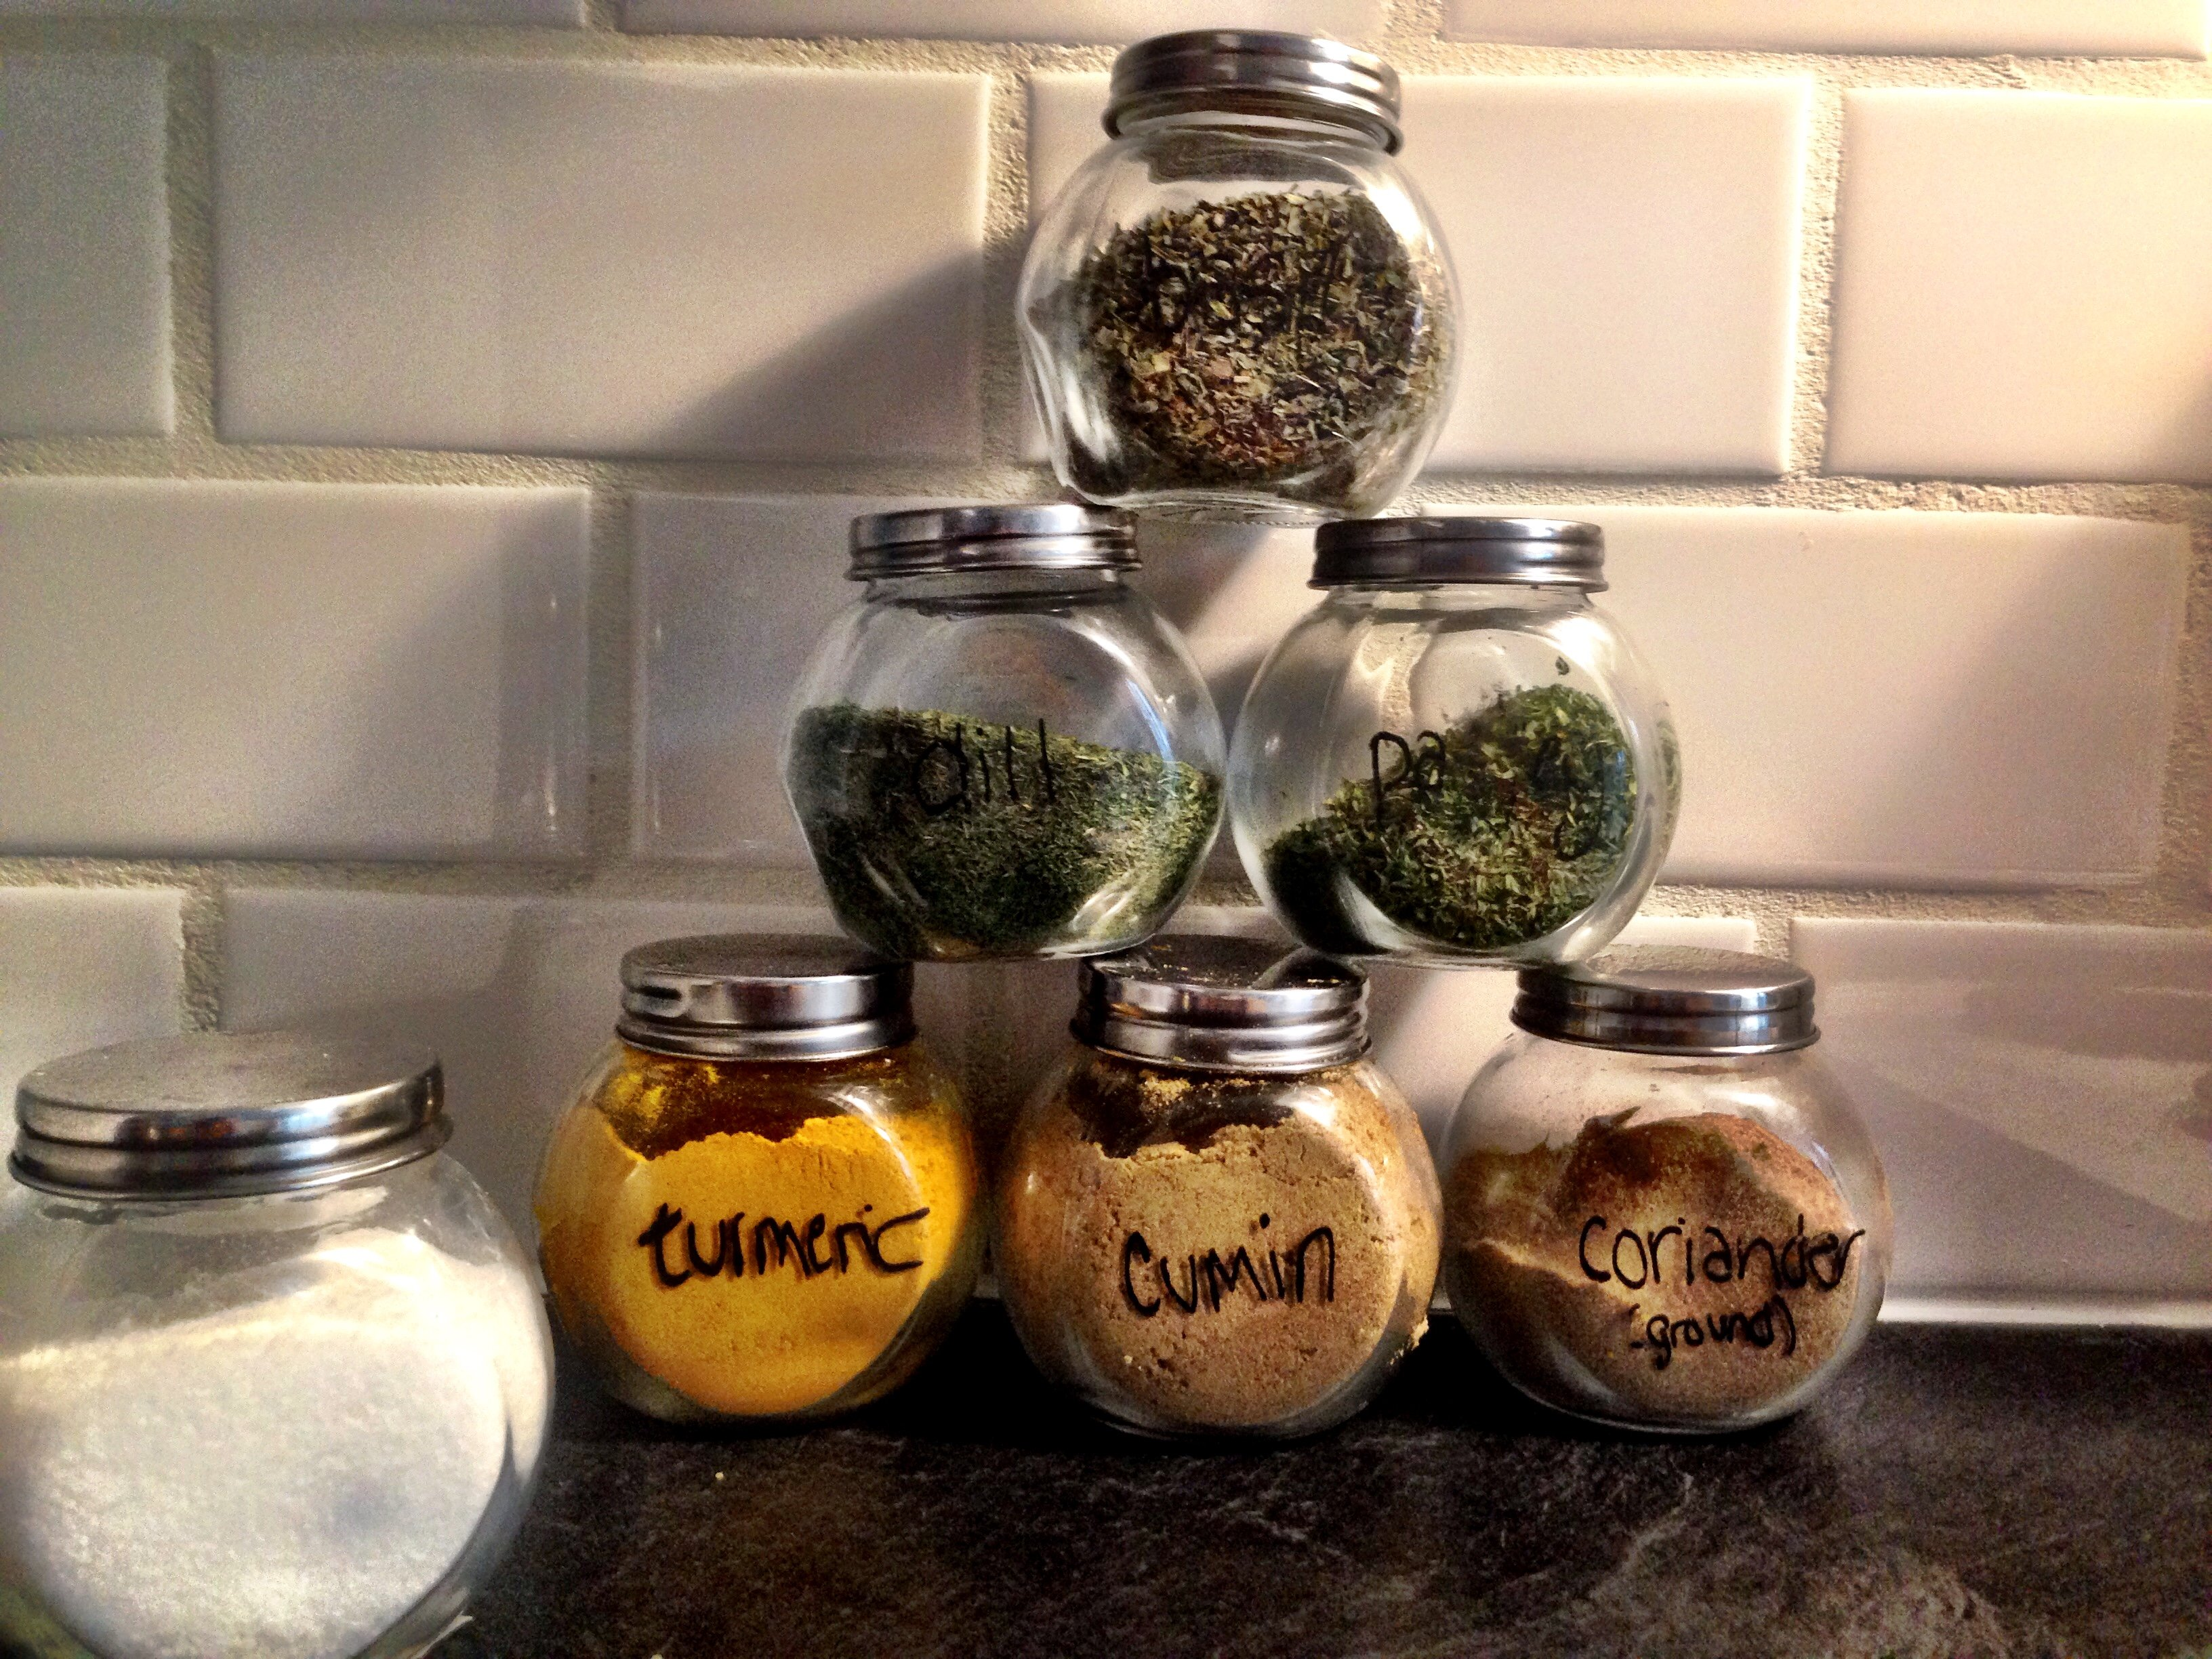 My current system - glass jars, labelled with chalkboard marker.